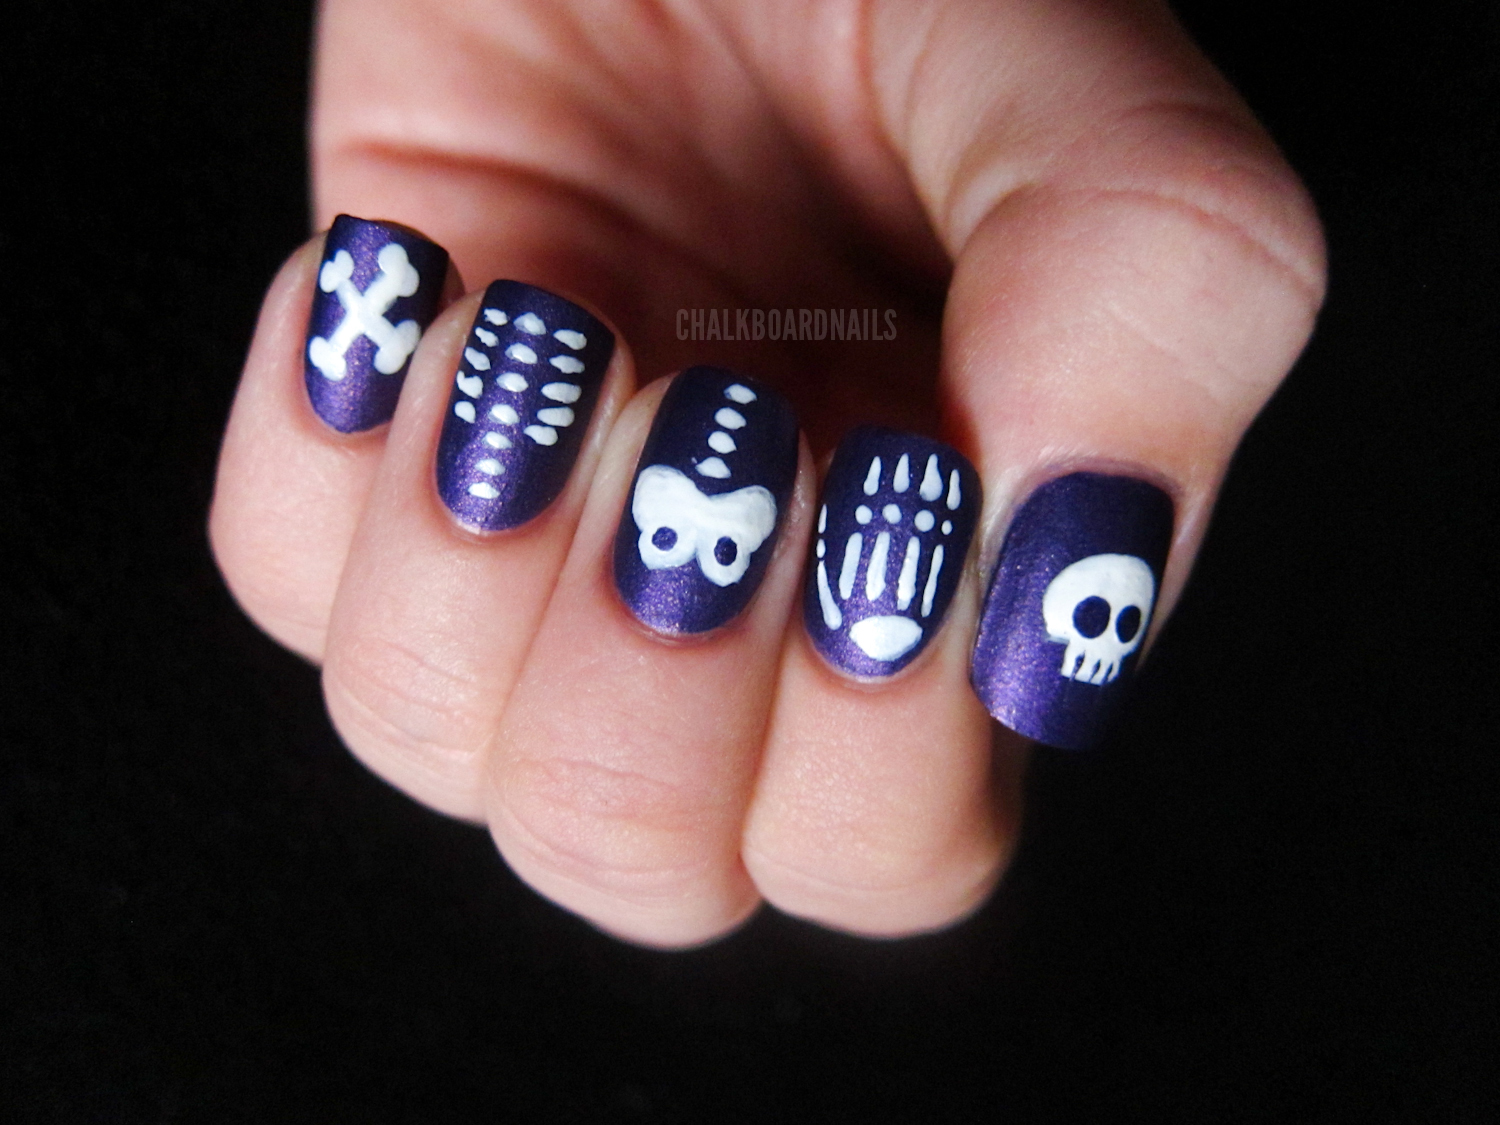 crossed bones, ribcage, pelvis, hand, skull - Skeleton Skittle Chalkboard Nails Nail Art Blog